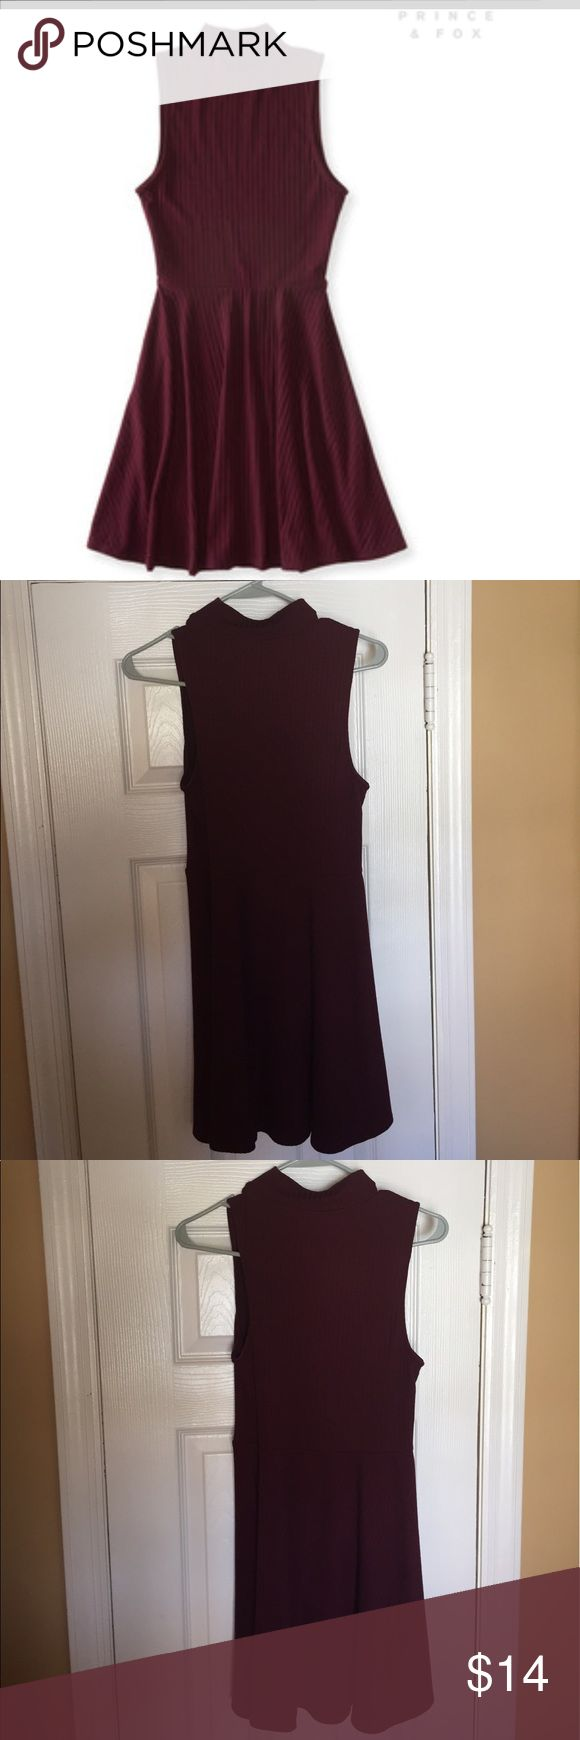 """Aeropostale- burgundy mock -neck sleeveless dress. Adorable dress, mock neck, sleeveless. Color is burgundy for fitting on top then flare bottom/skirt. Measurements : 28"""" Chest & waist at the seam, 32"""" length from top shoulder. Prince fox by Aeropostale. Model in the picture is 5'10"""". Dresses Mini"""